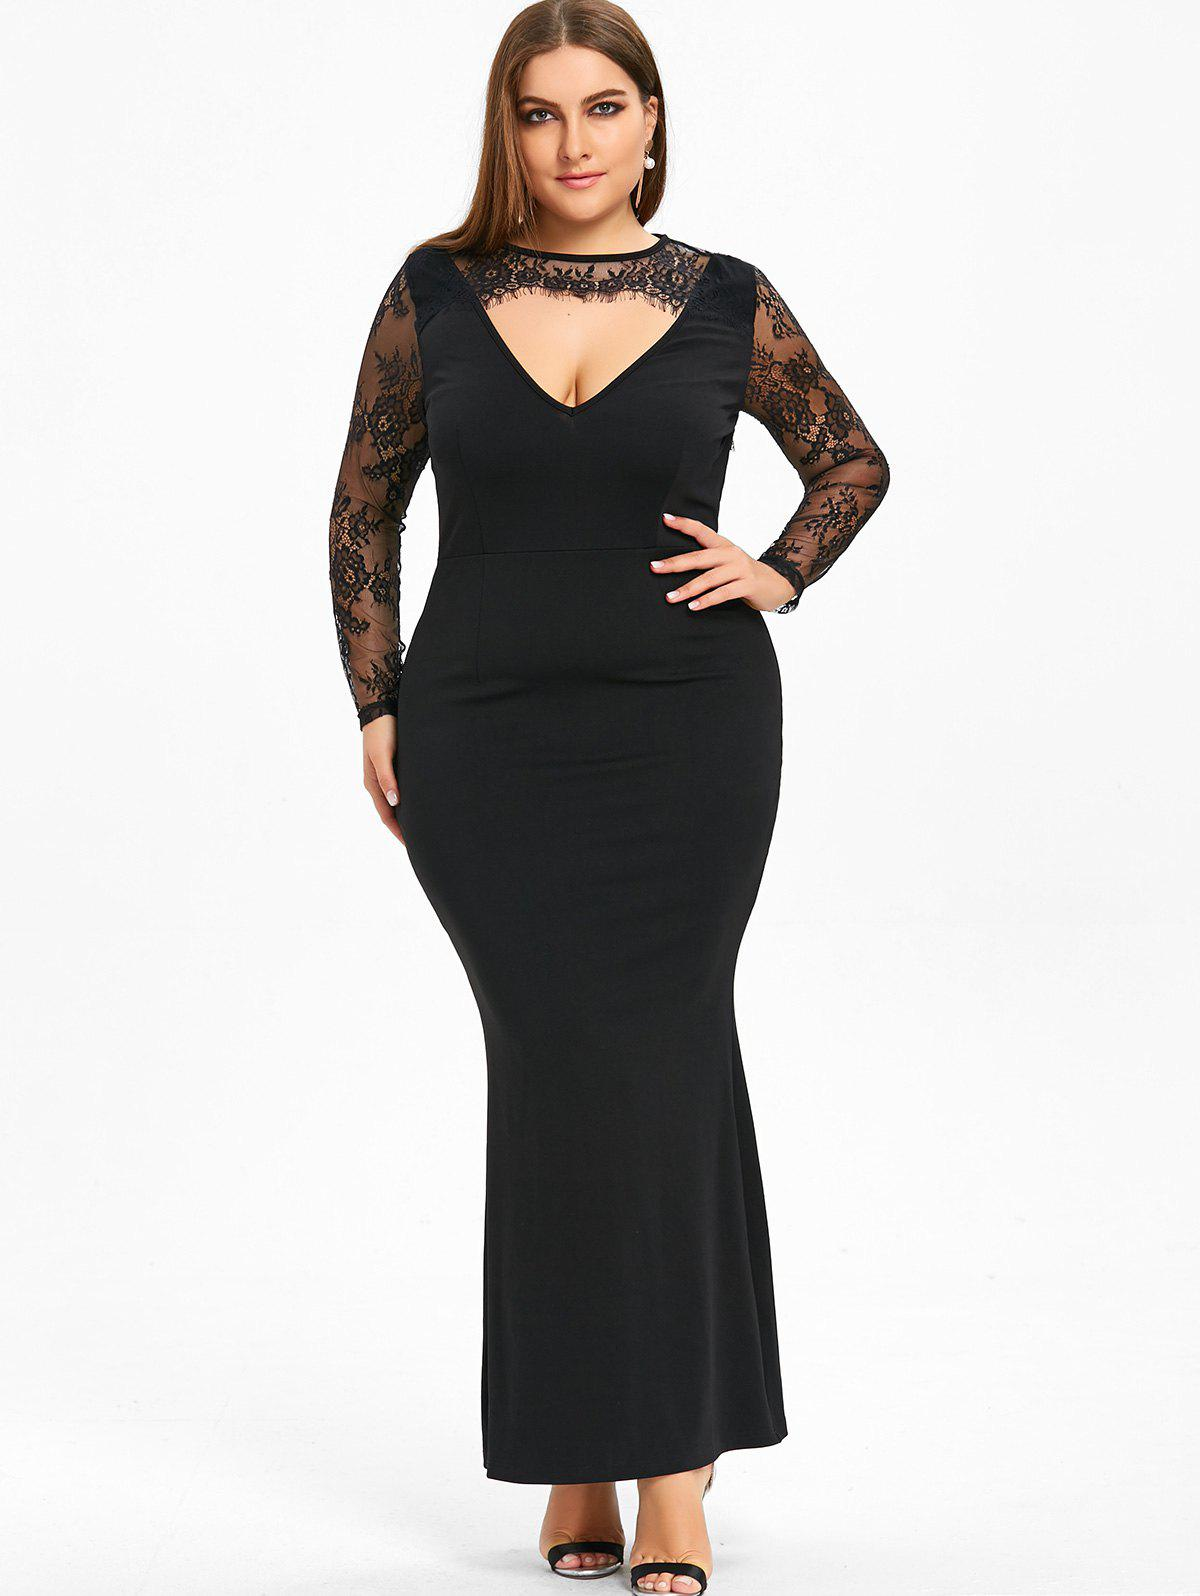 2017 plus size cut out lace sleeve bodycon dress black xl in plus